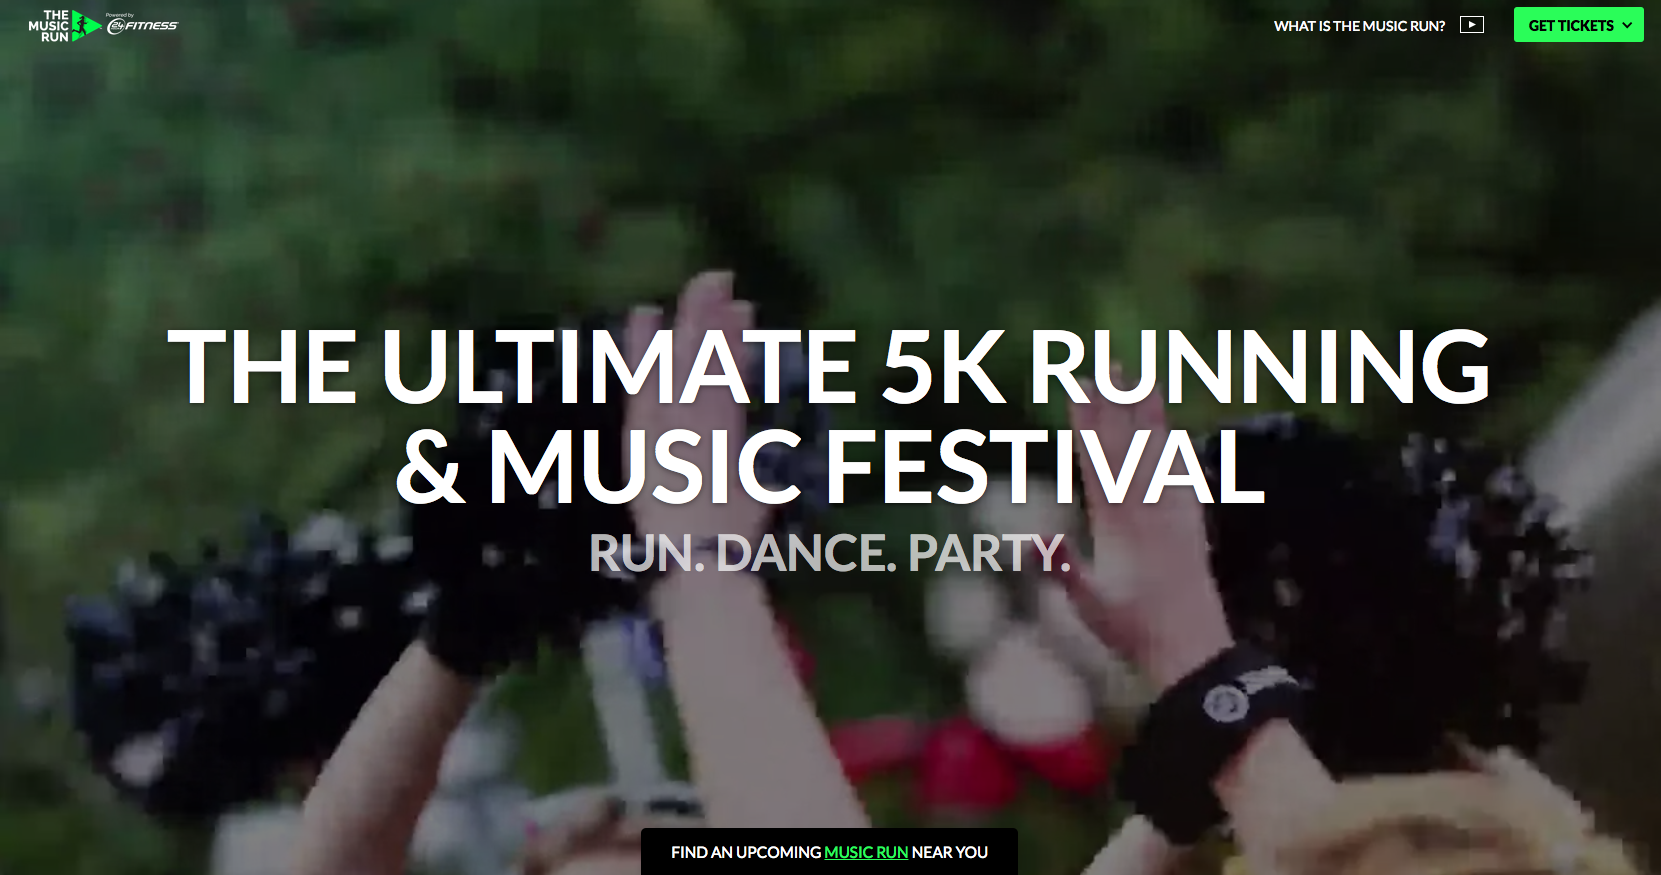 The Music Run event website